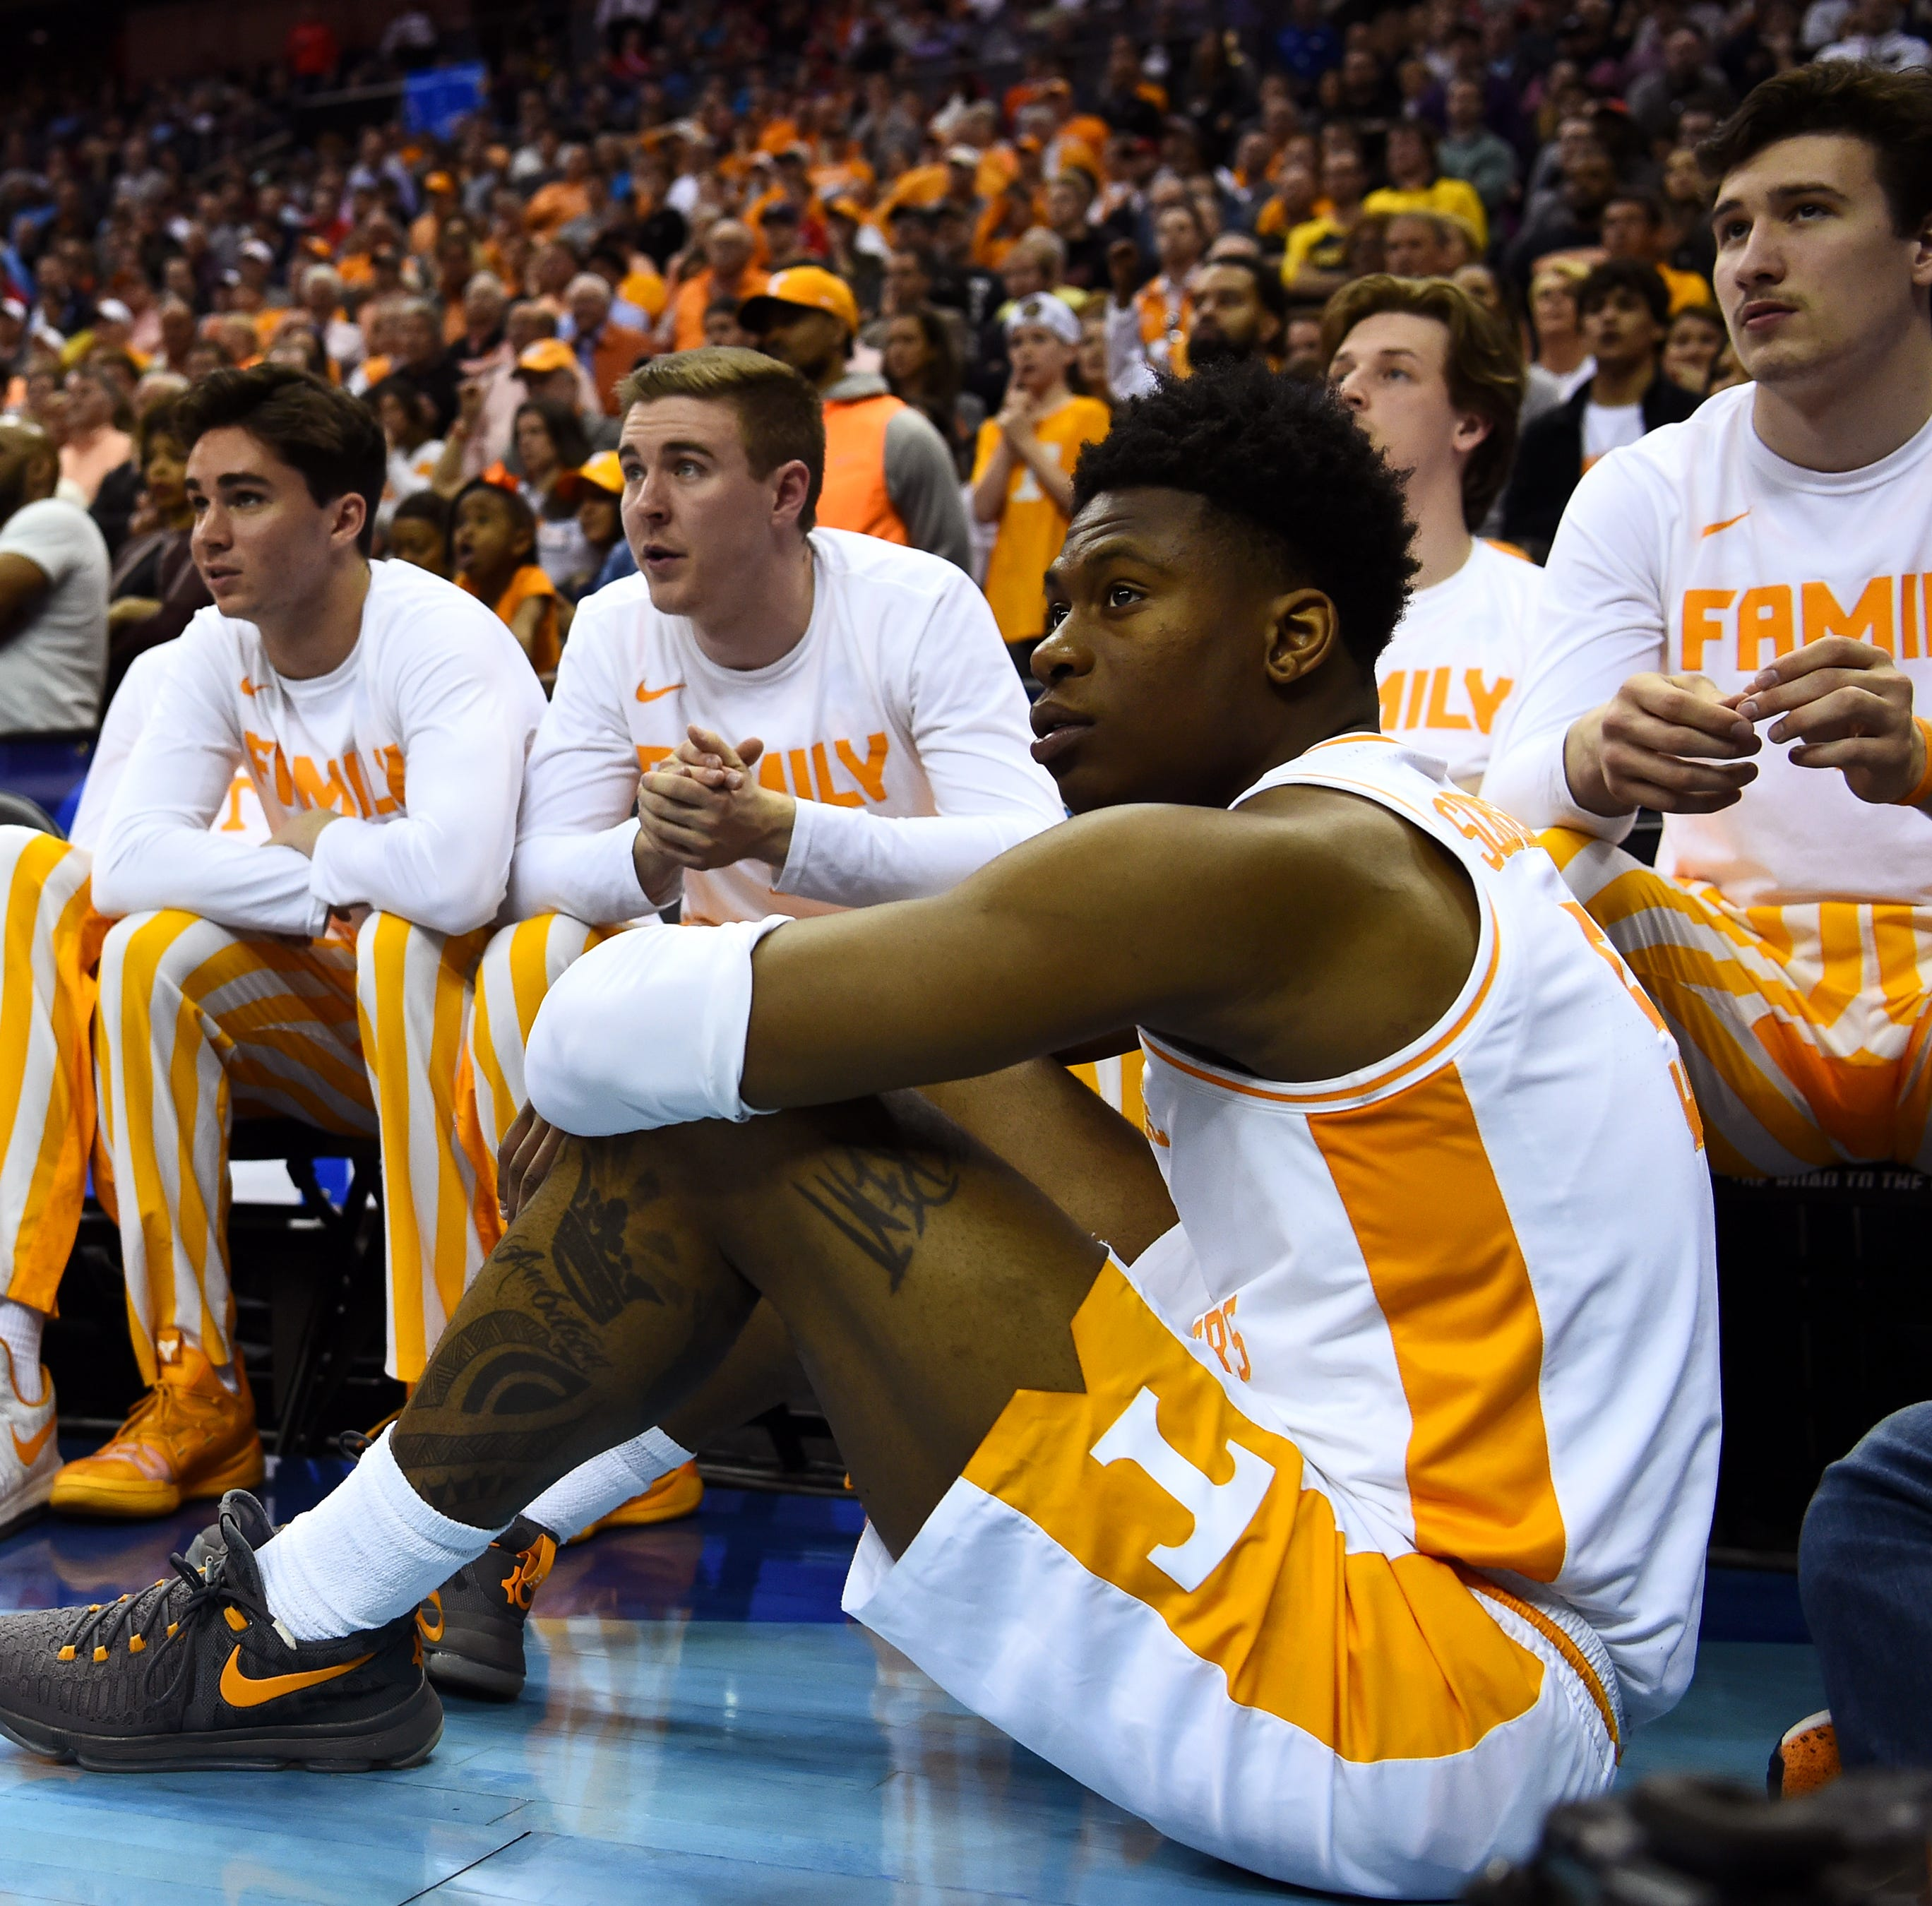 Tennessee-Purdue makes for sweet start to Sweet 16